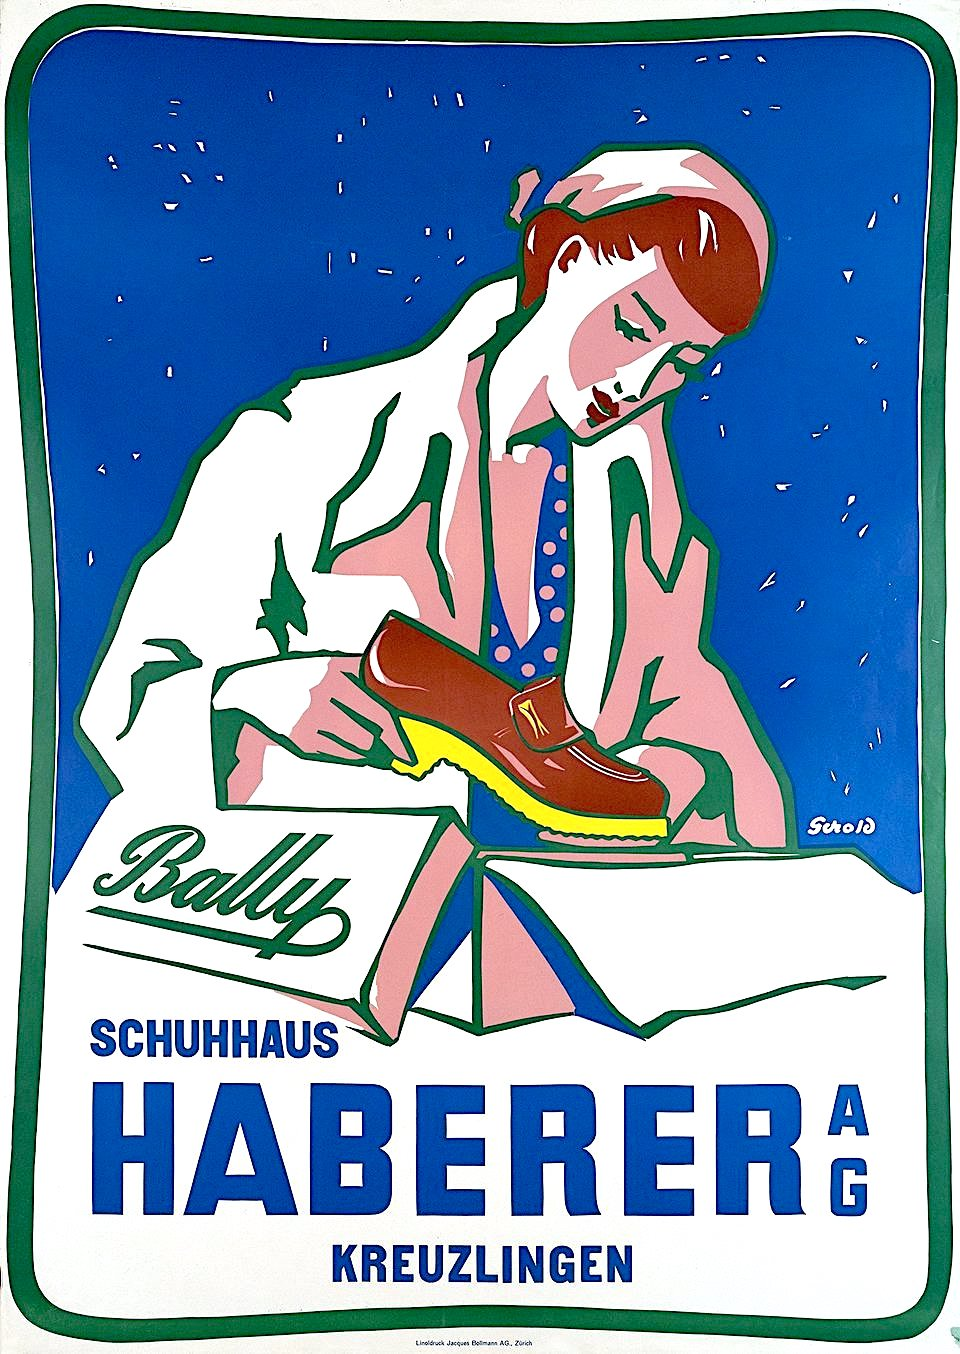 a Gerold Hunziker illustration 1950 for Bally shoes